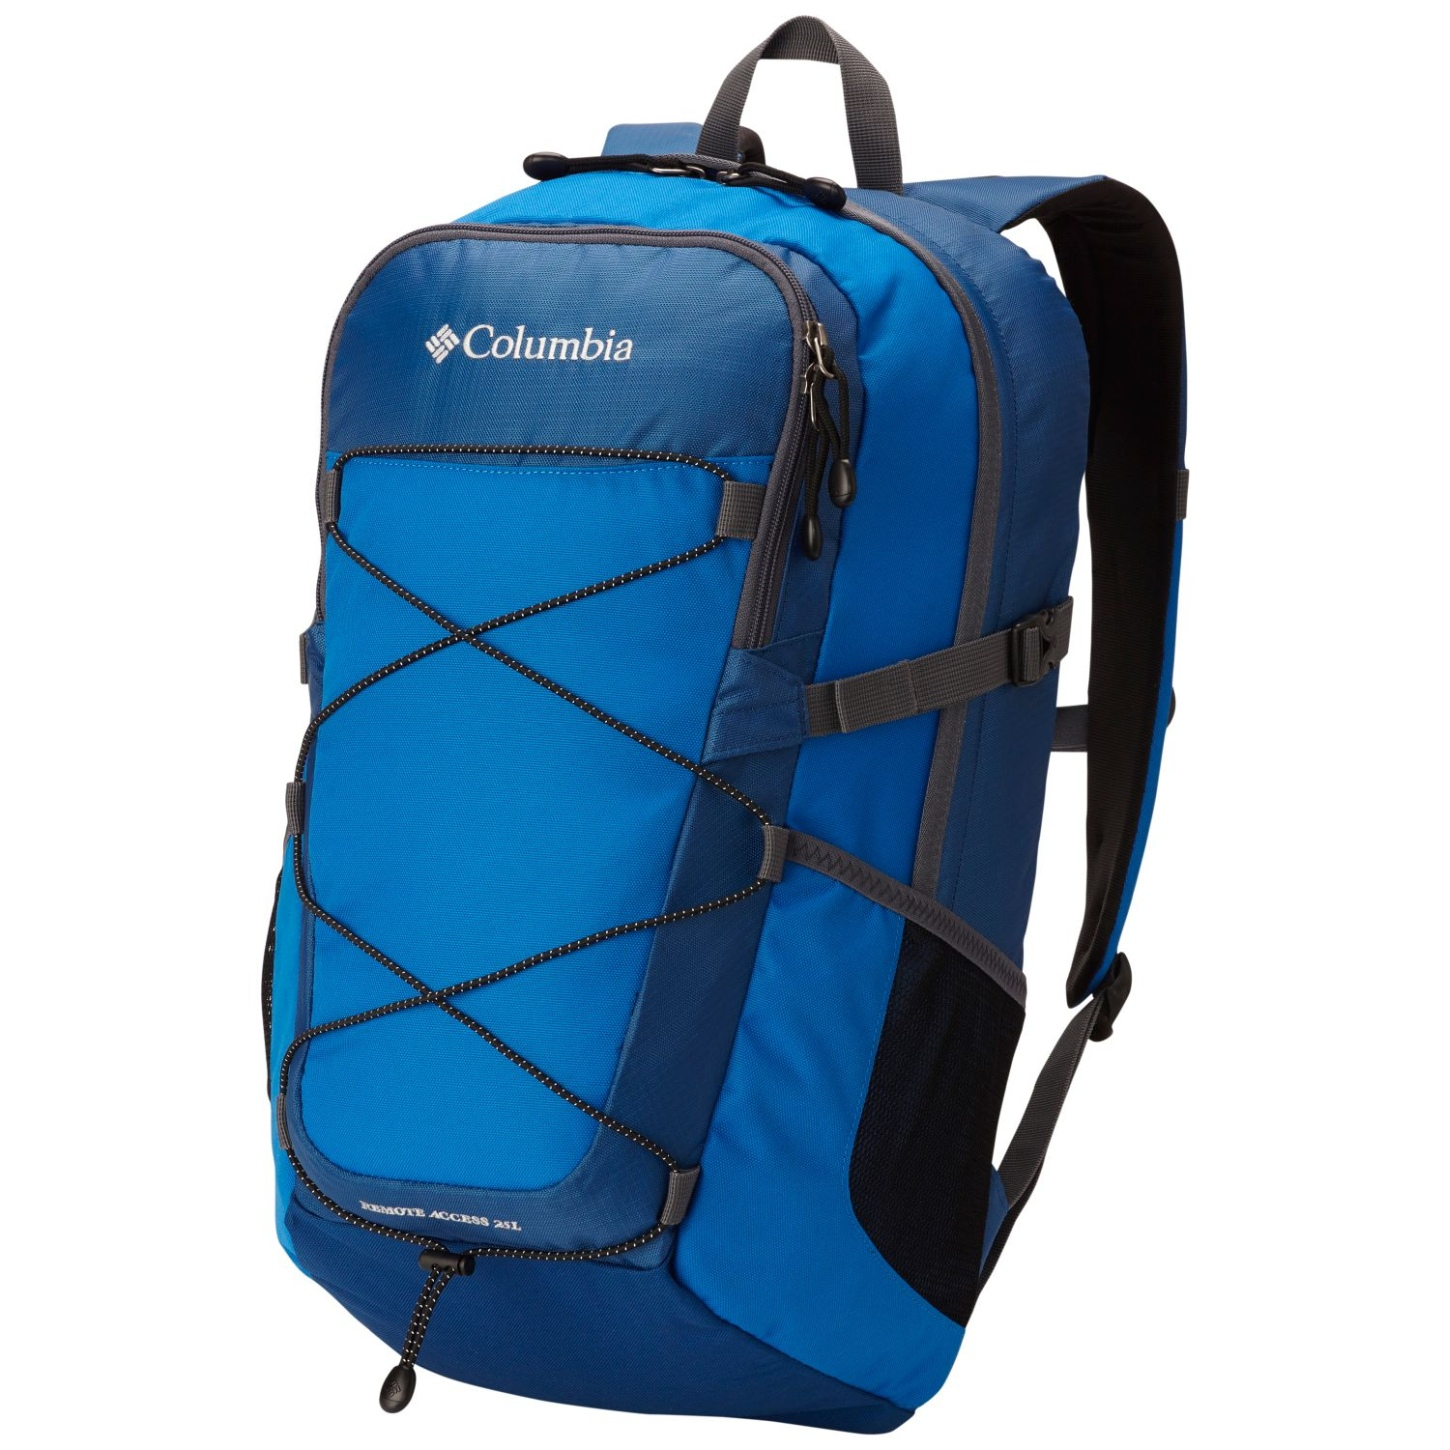 Columbia Remote Access 25L PackC Super Blue, Marine Blue-30